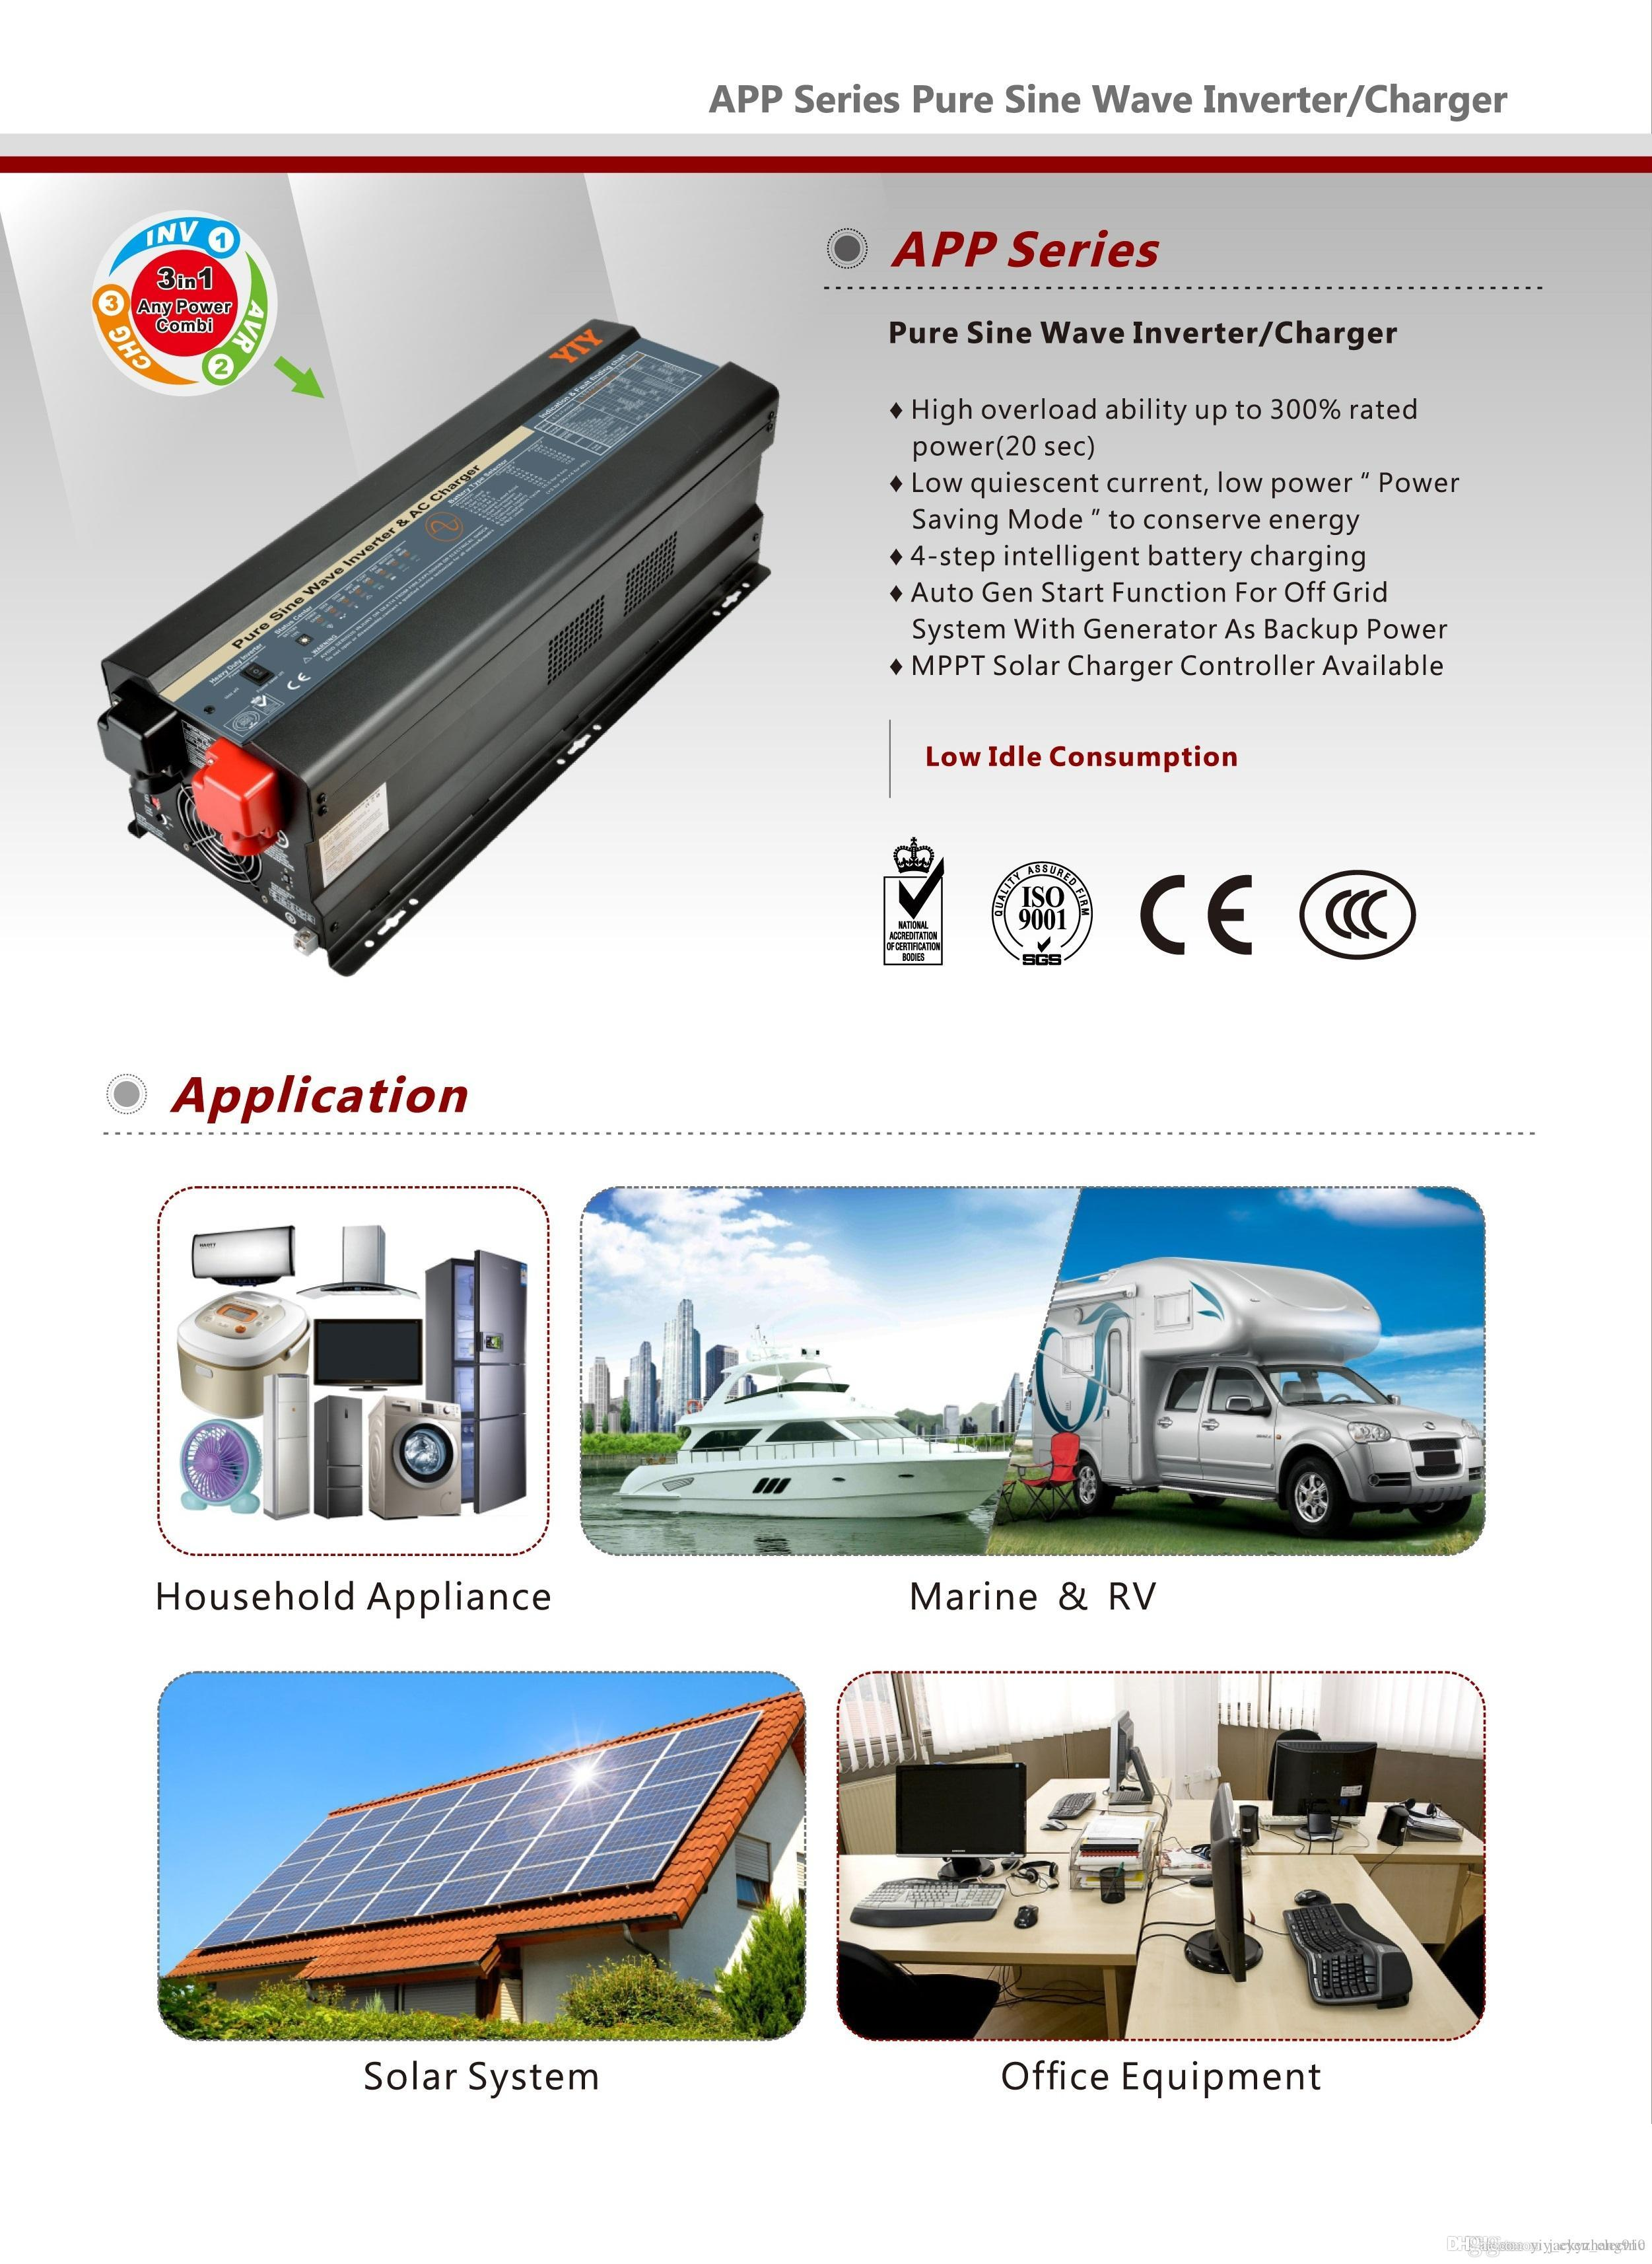 YIY APP SERIES PURE SINE WAVE INVERTER/CHARGER DC&AC EXCHANGE DC 12V LOW  IDLE HIGH OVERLOAD ABILITY UP TO 300% RATED POWER (20 SEC) 1~6KW